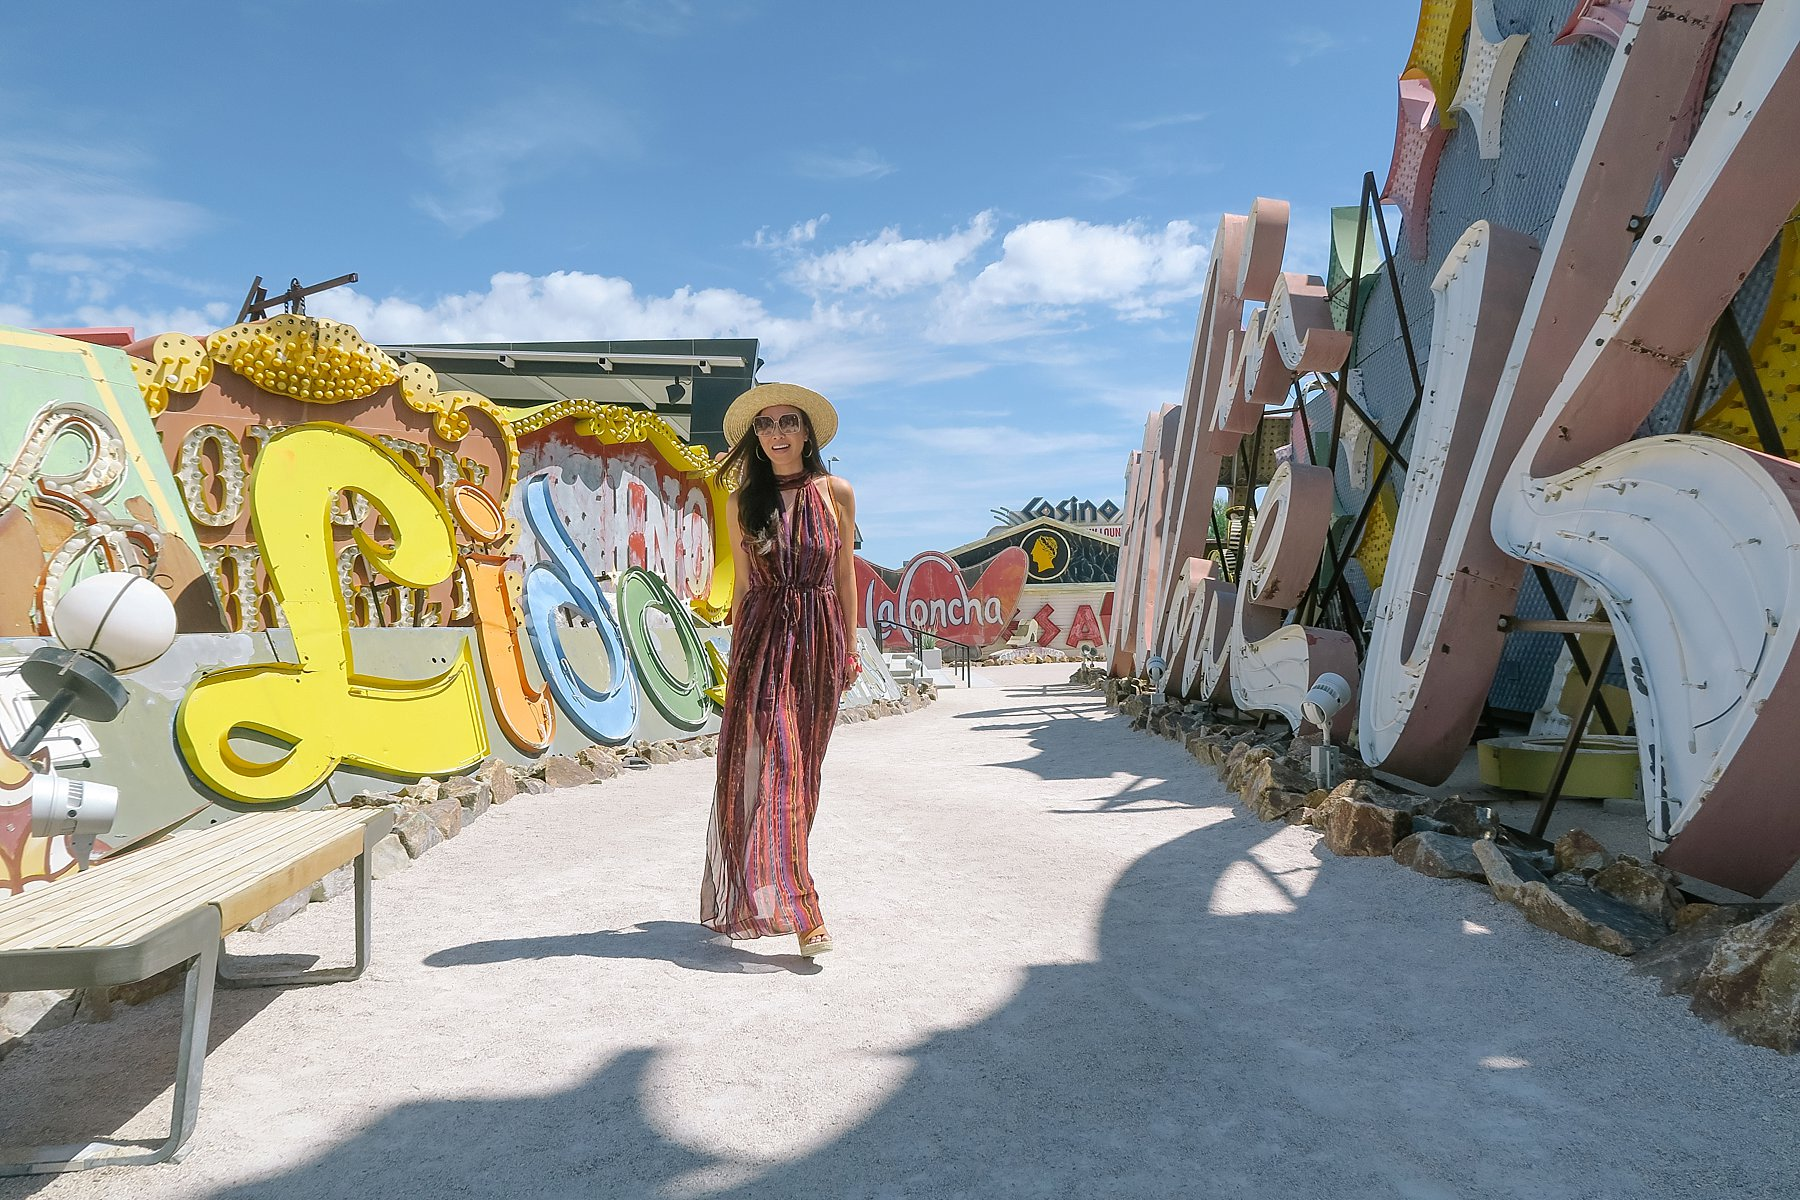 Things to do in Vegas, fun Clean unique and instagrammable! Las Vegas Neon Museum // great for instagram